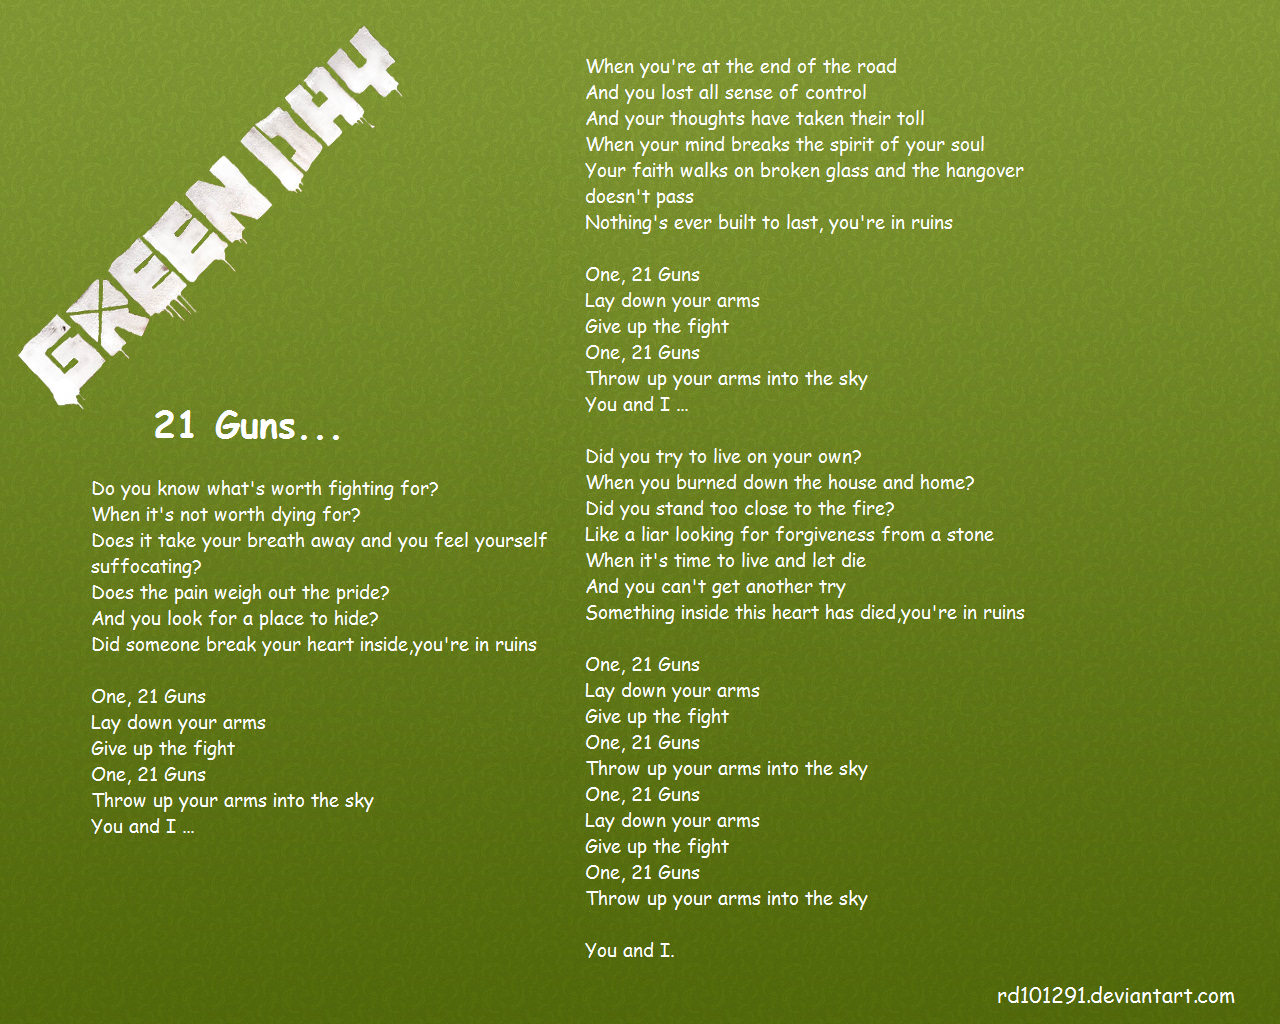 Green day - 21 Guns by rd101291 on DeviantArt